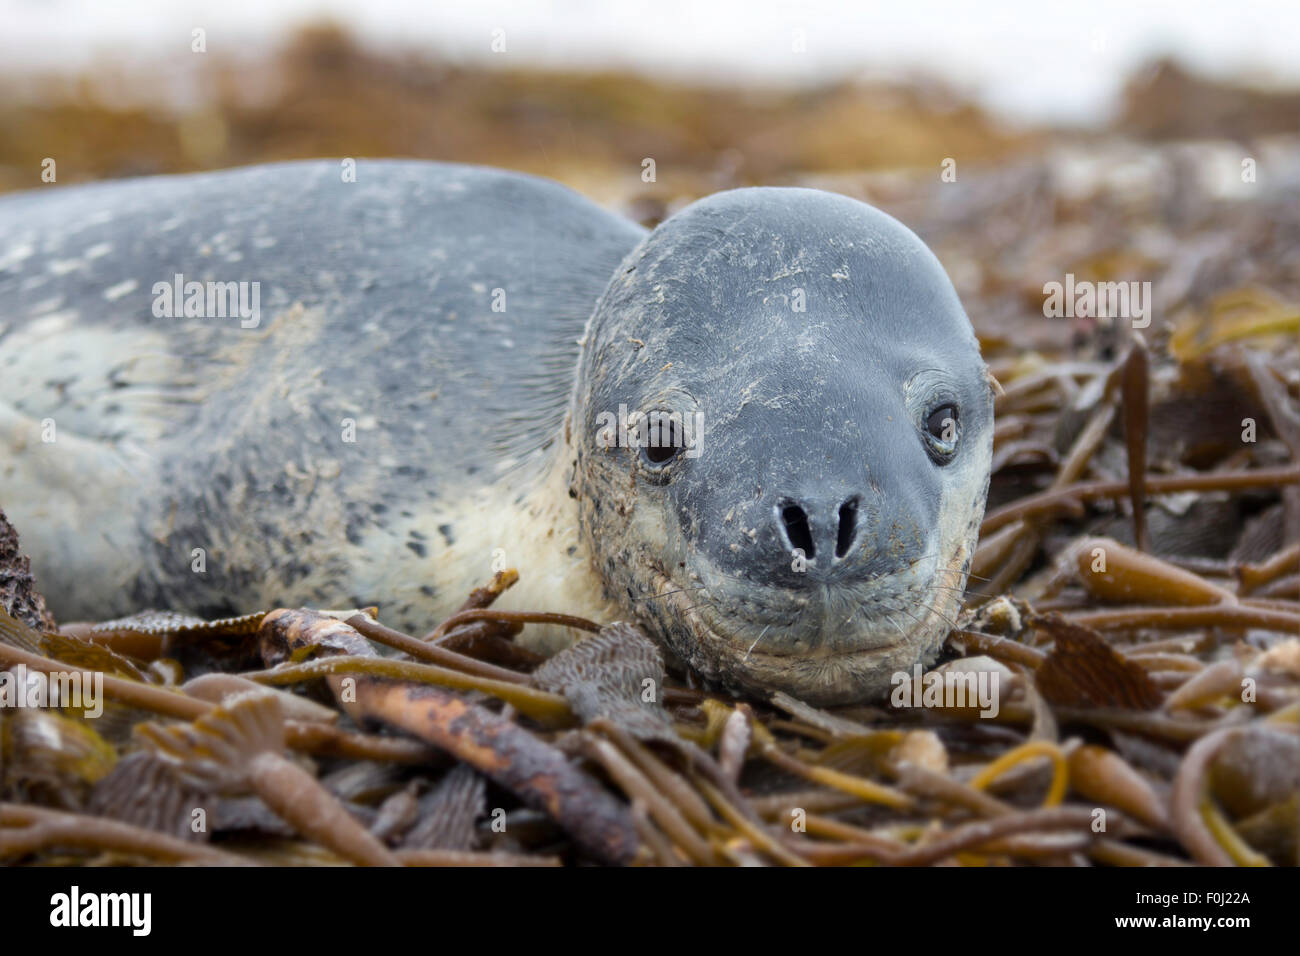 A Leopard Seal lying in Kelp on the shore at Volunteer Point, Falkland Islands. Leopard seals are not native to - Stock Image